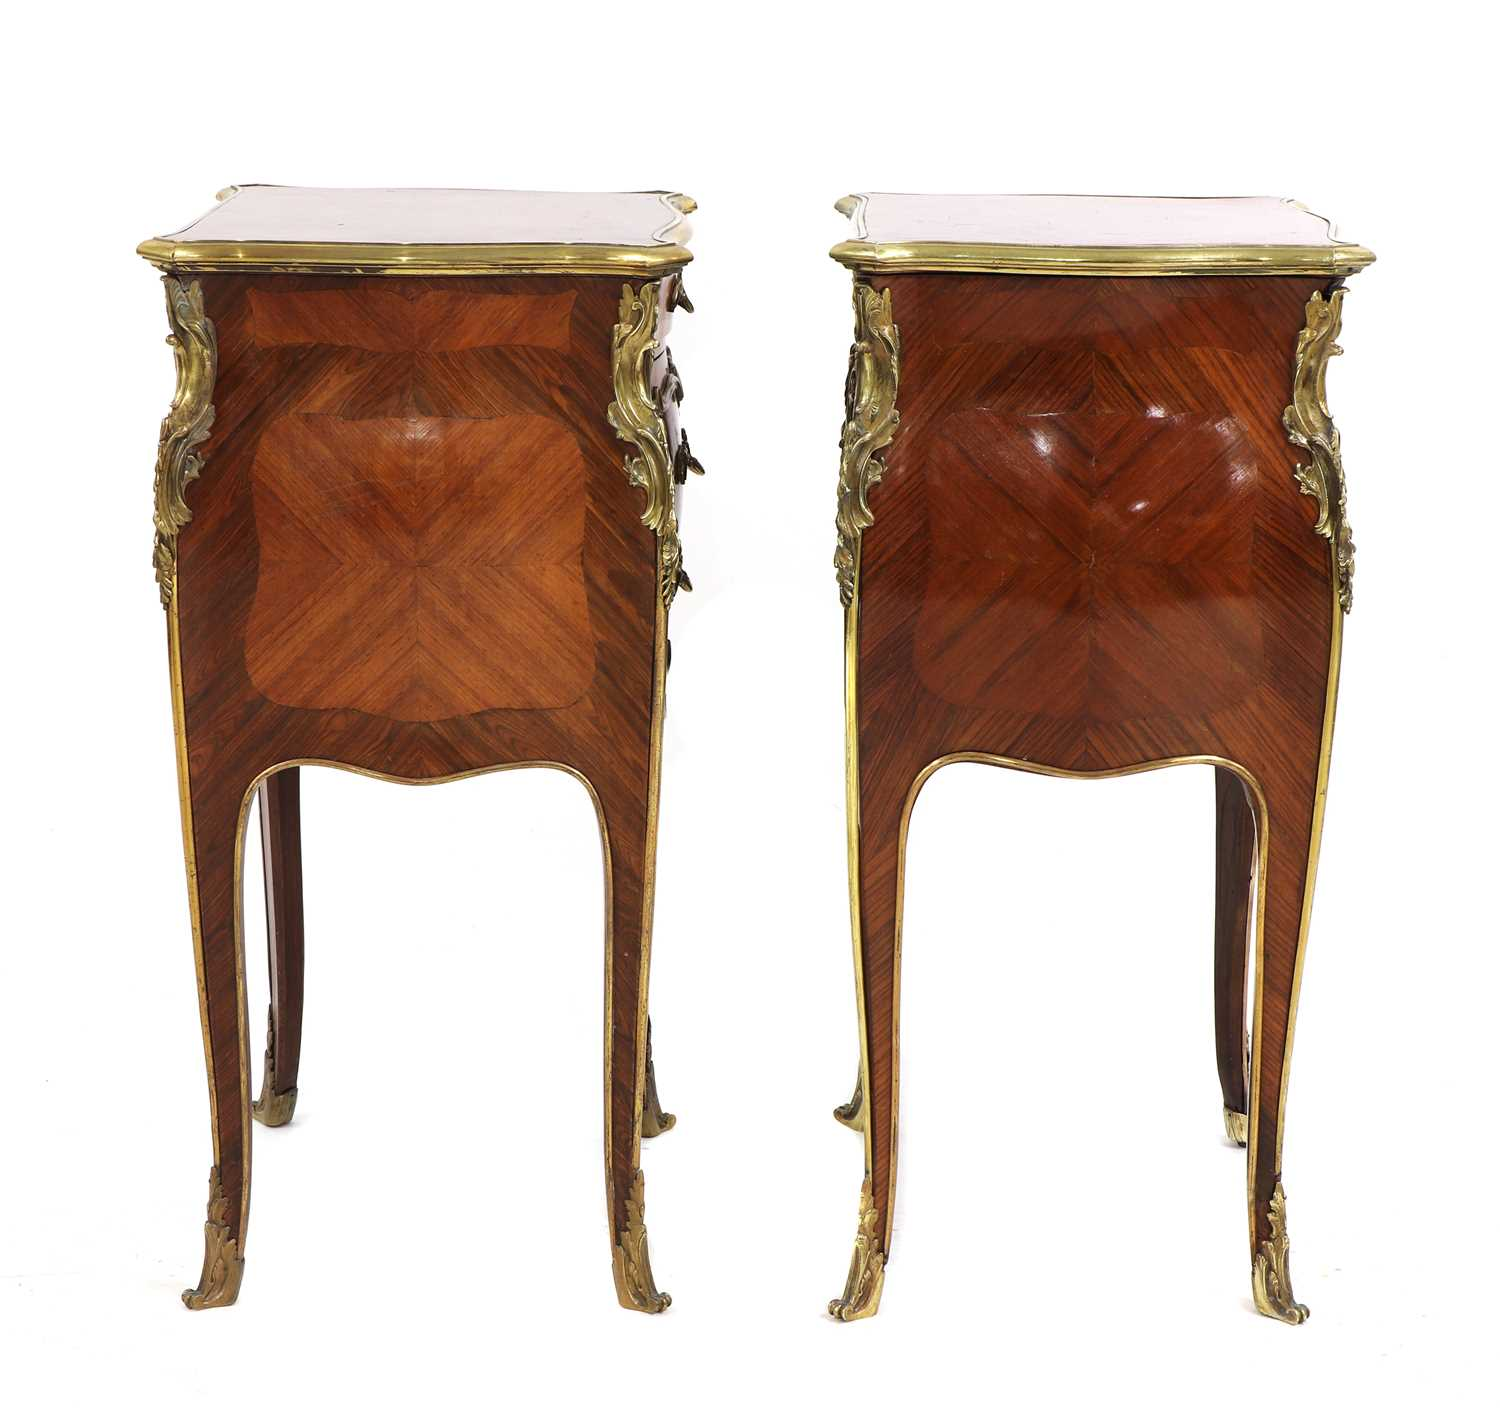 A pair of French Louis XV-style kingwood and ormolu night tables, - Image 3 of 9